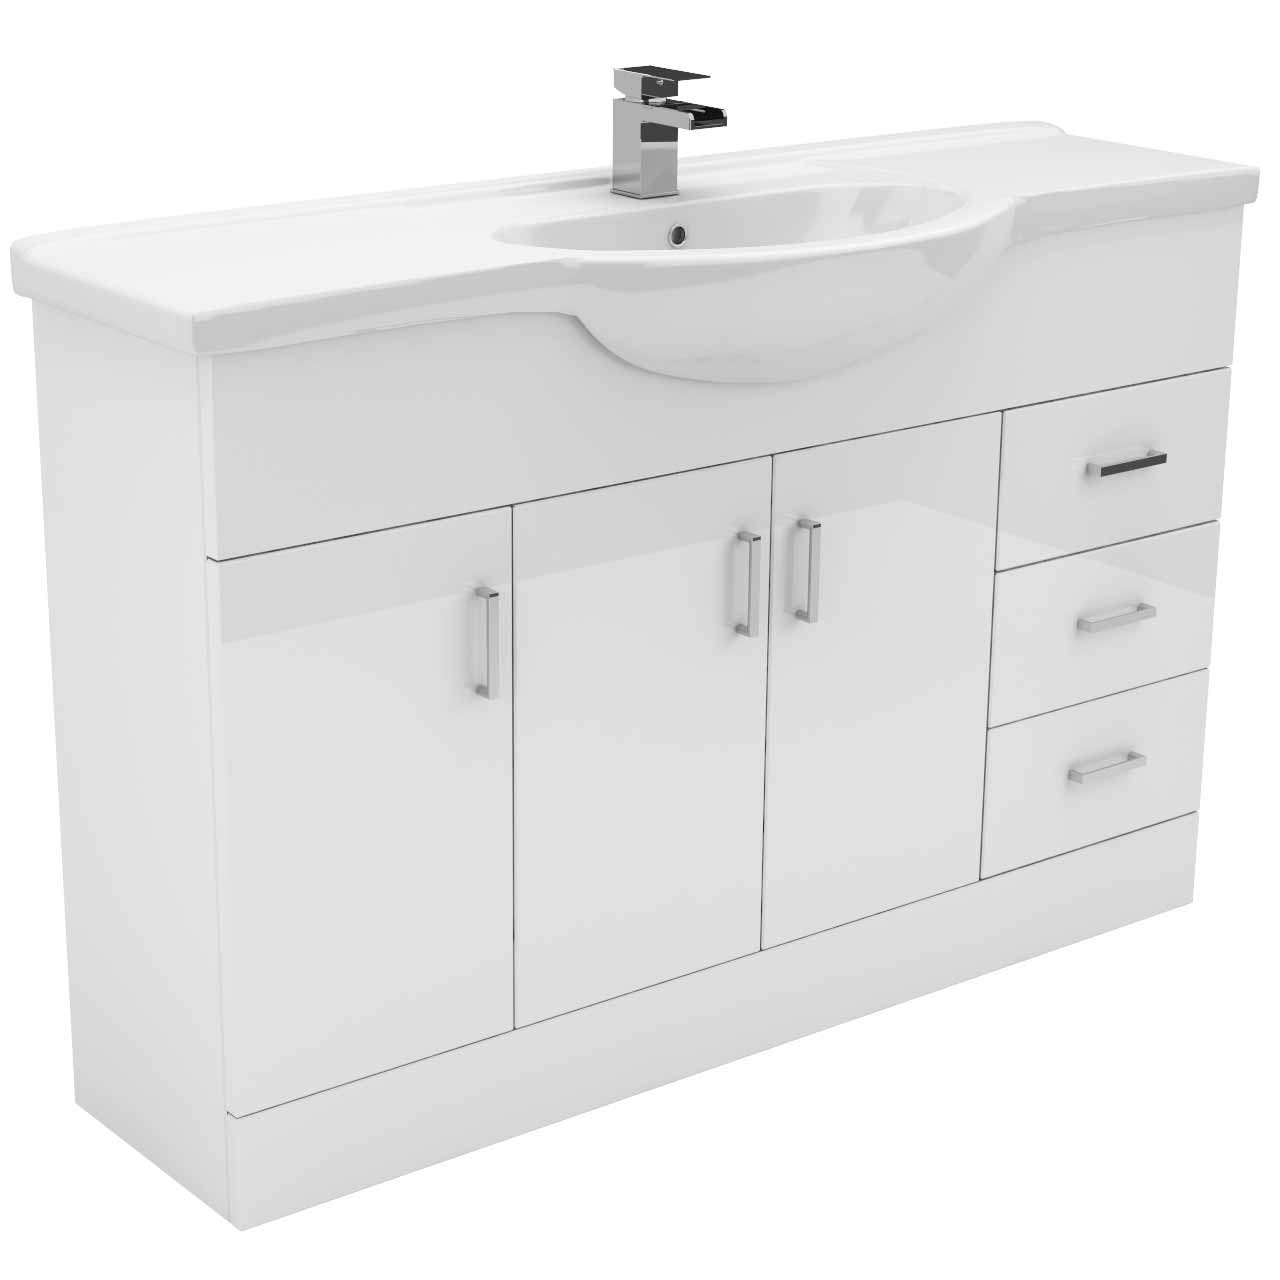 1200mm Vanity Units Alexander James 1200mm Vanity Unit